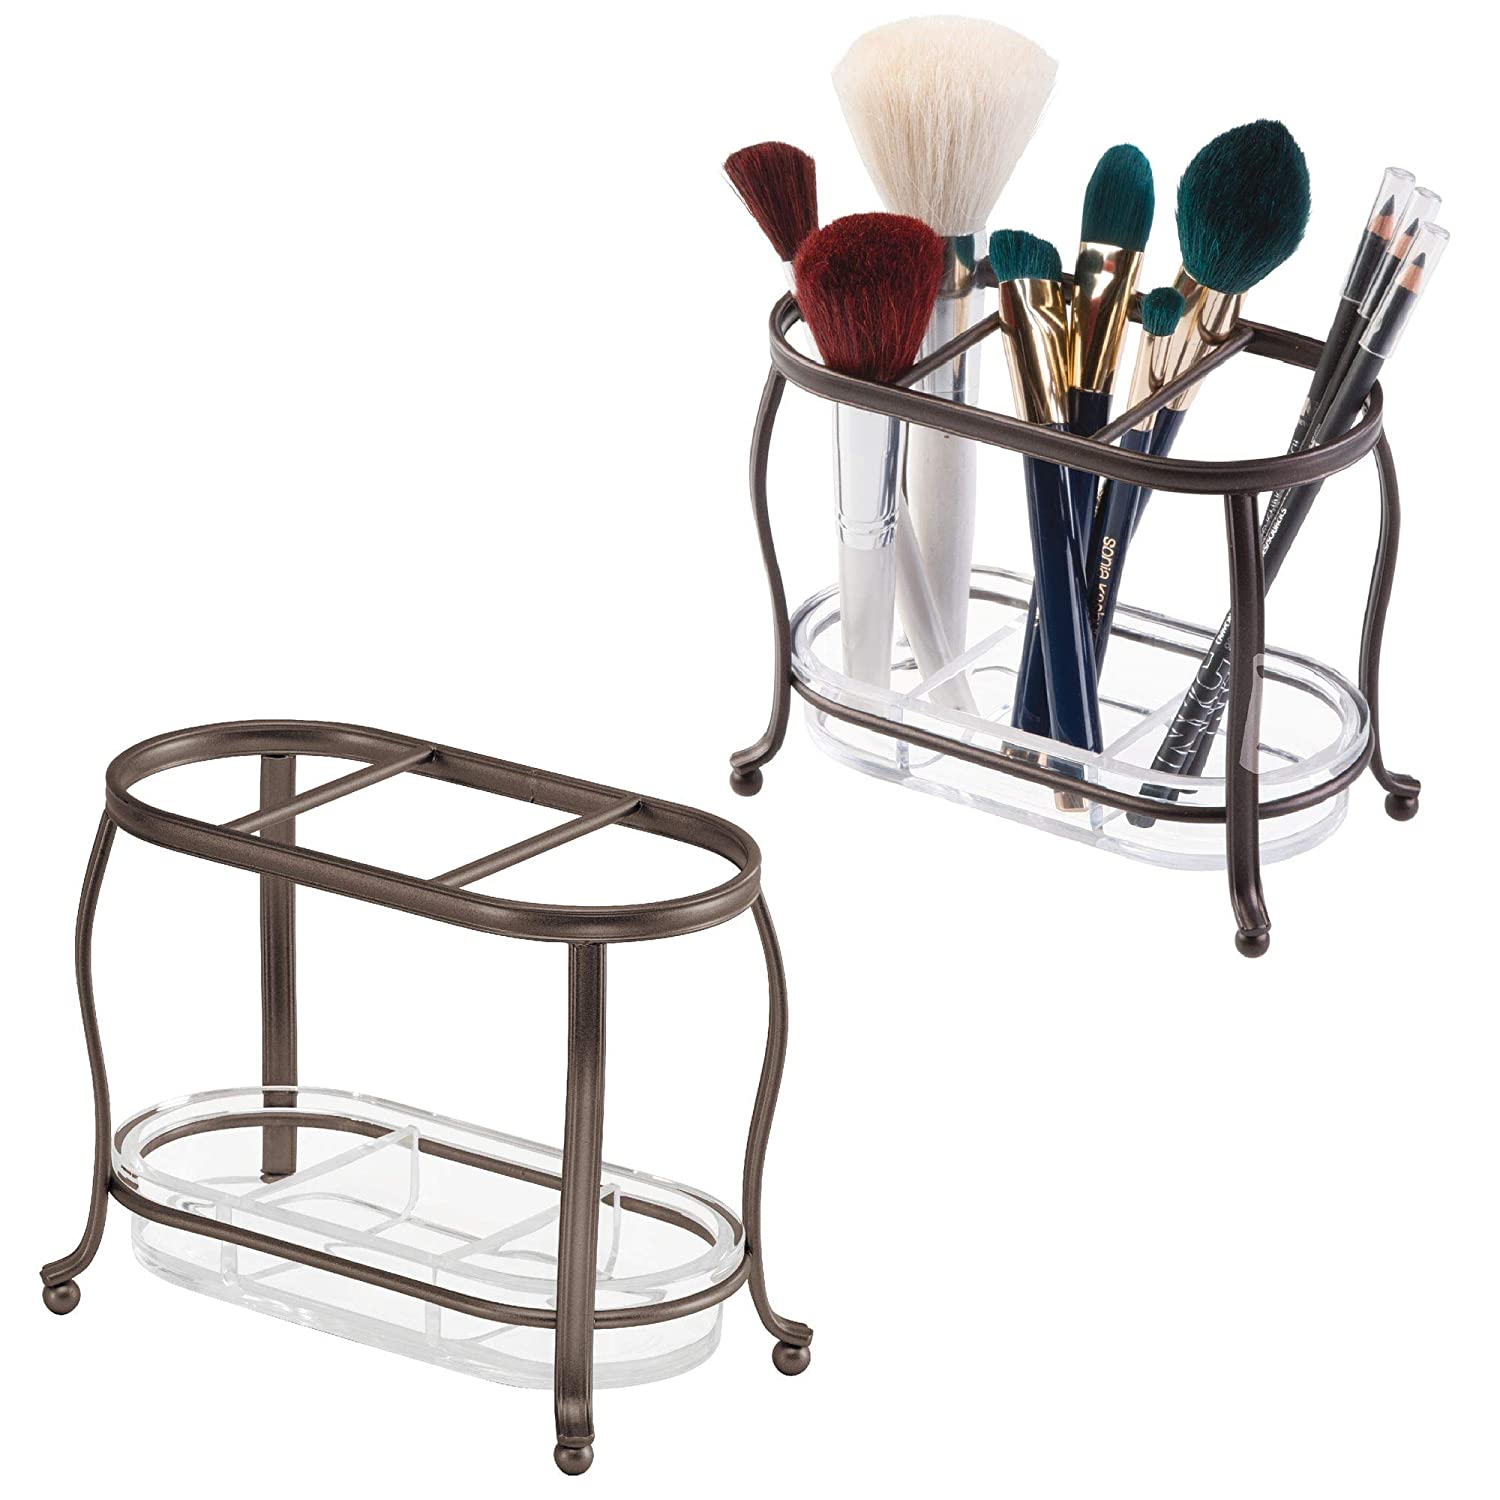 mDesign Decorative Makeup Brush Storage Organizer Tray Stand Bathroom Vanity Counter Tops, Dressing Tables, Cosmetic Stations - 3 Sections Removable Bottom Tray - Pack of 2, Bronze/Clear MetroDecor